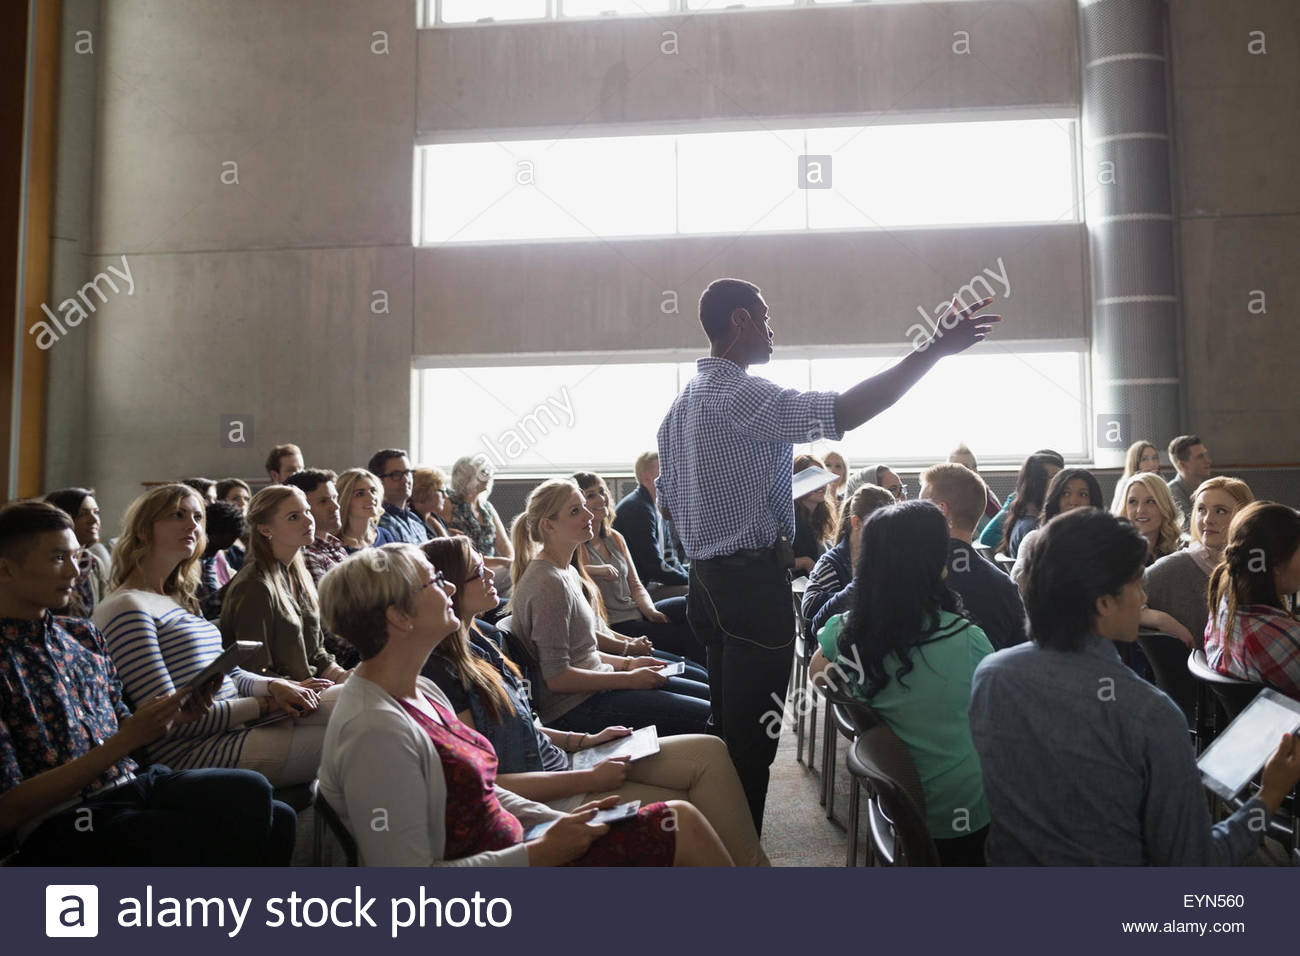 Professor giving lecture among auditorium audience - Stock Image